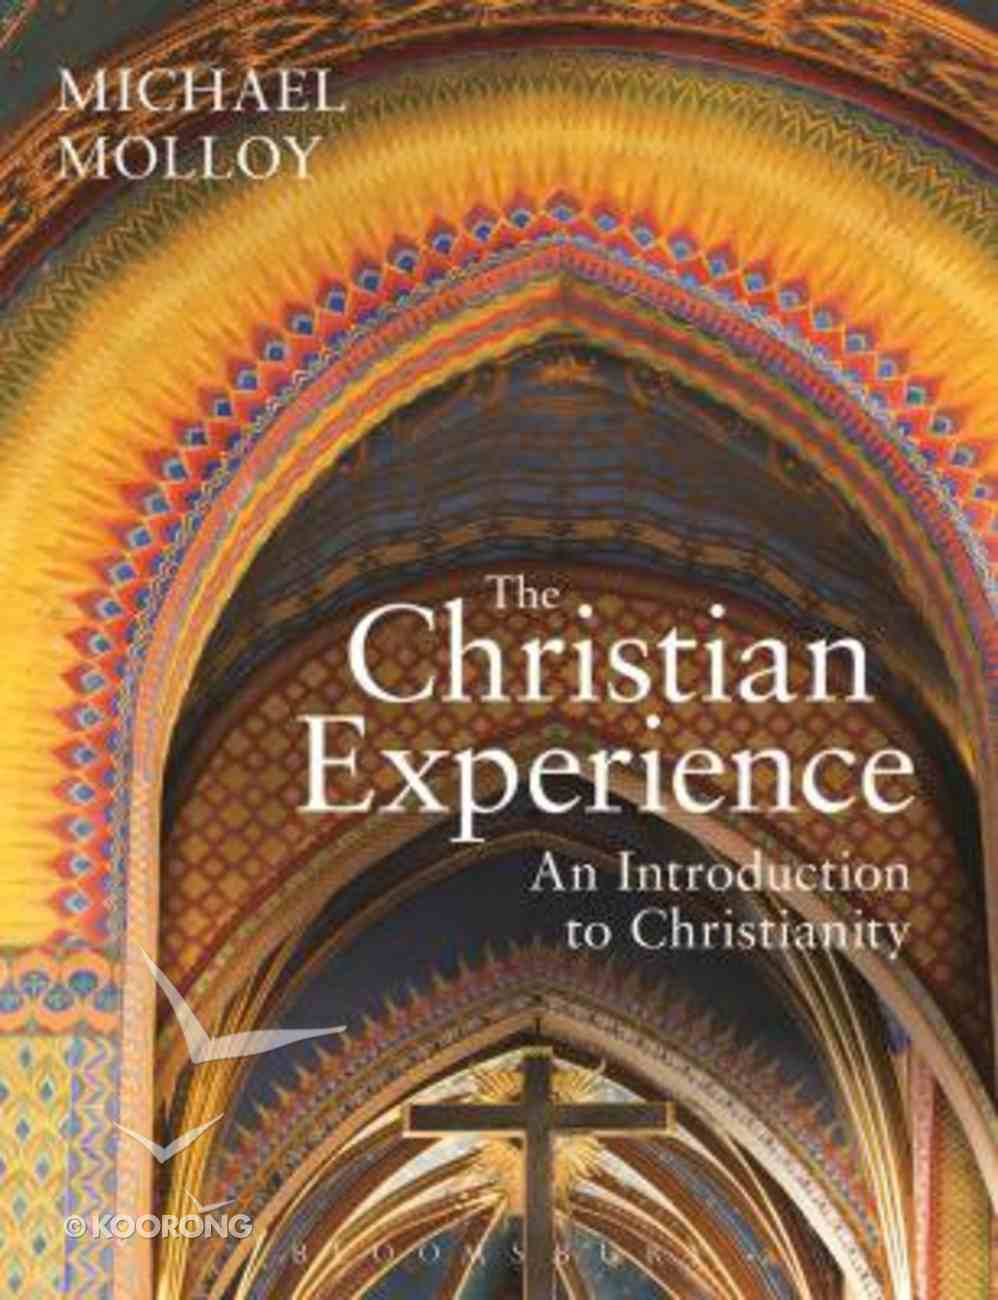 The Christian Experience: An Introduction to Christianity Paperback